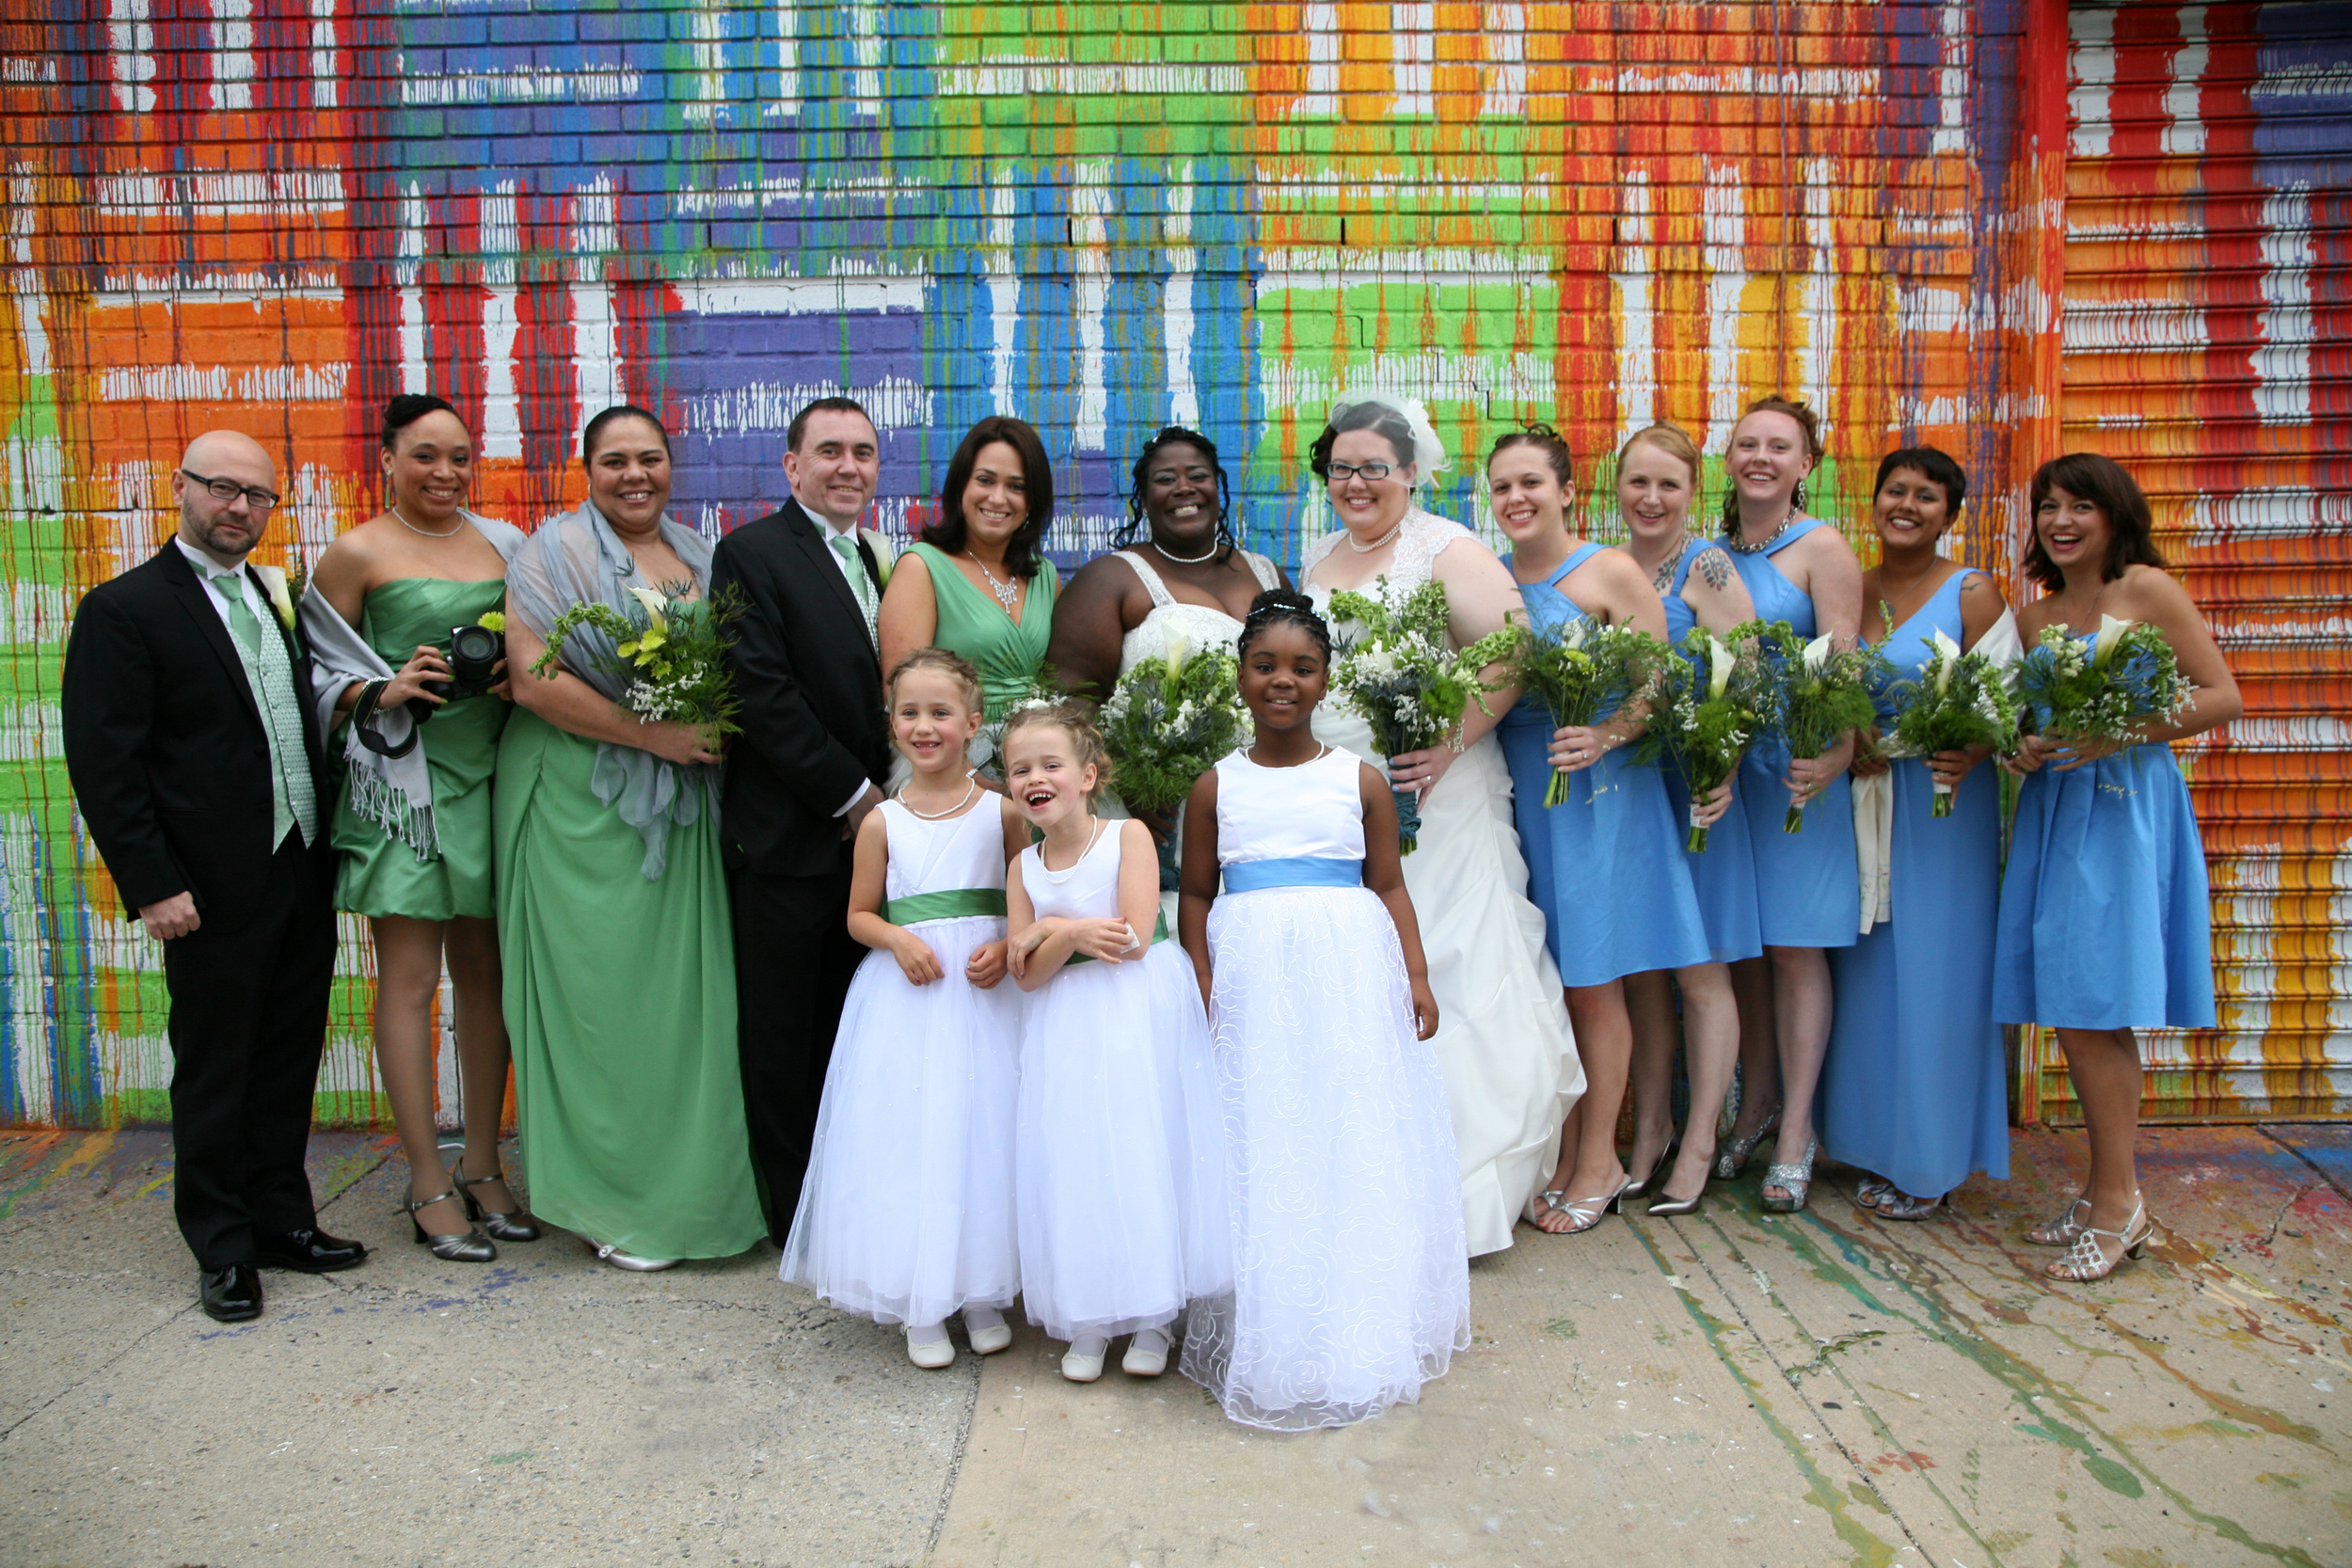 IMG_2161_graffiti_bridal_party.jpg